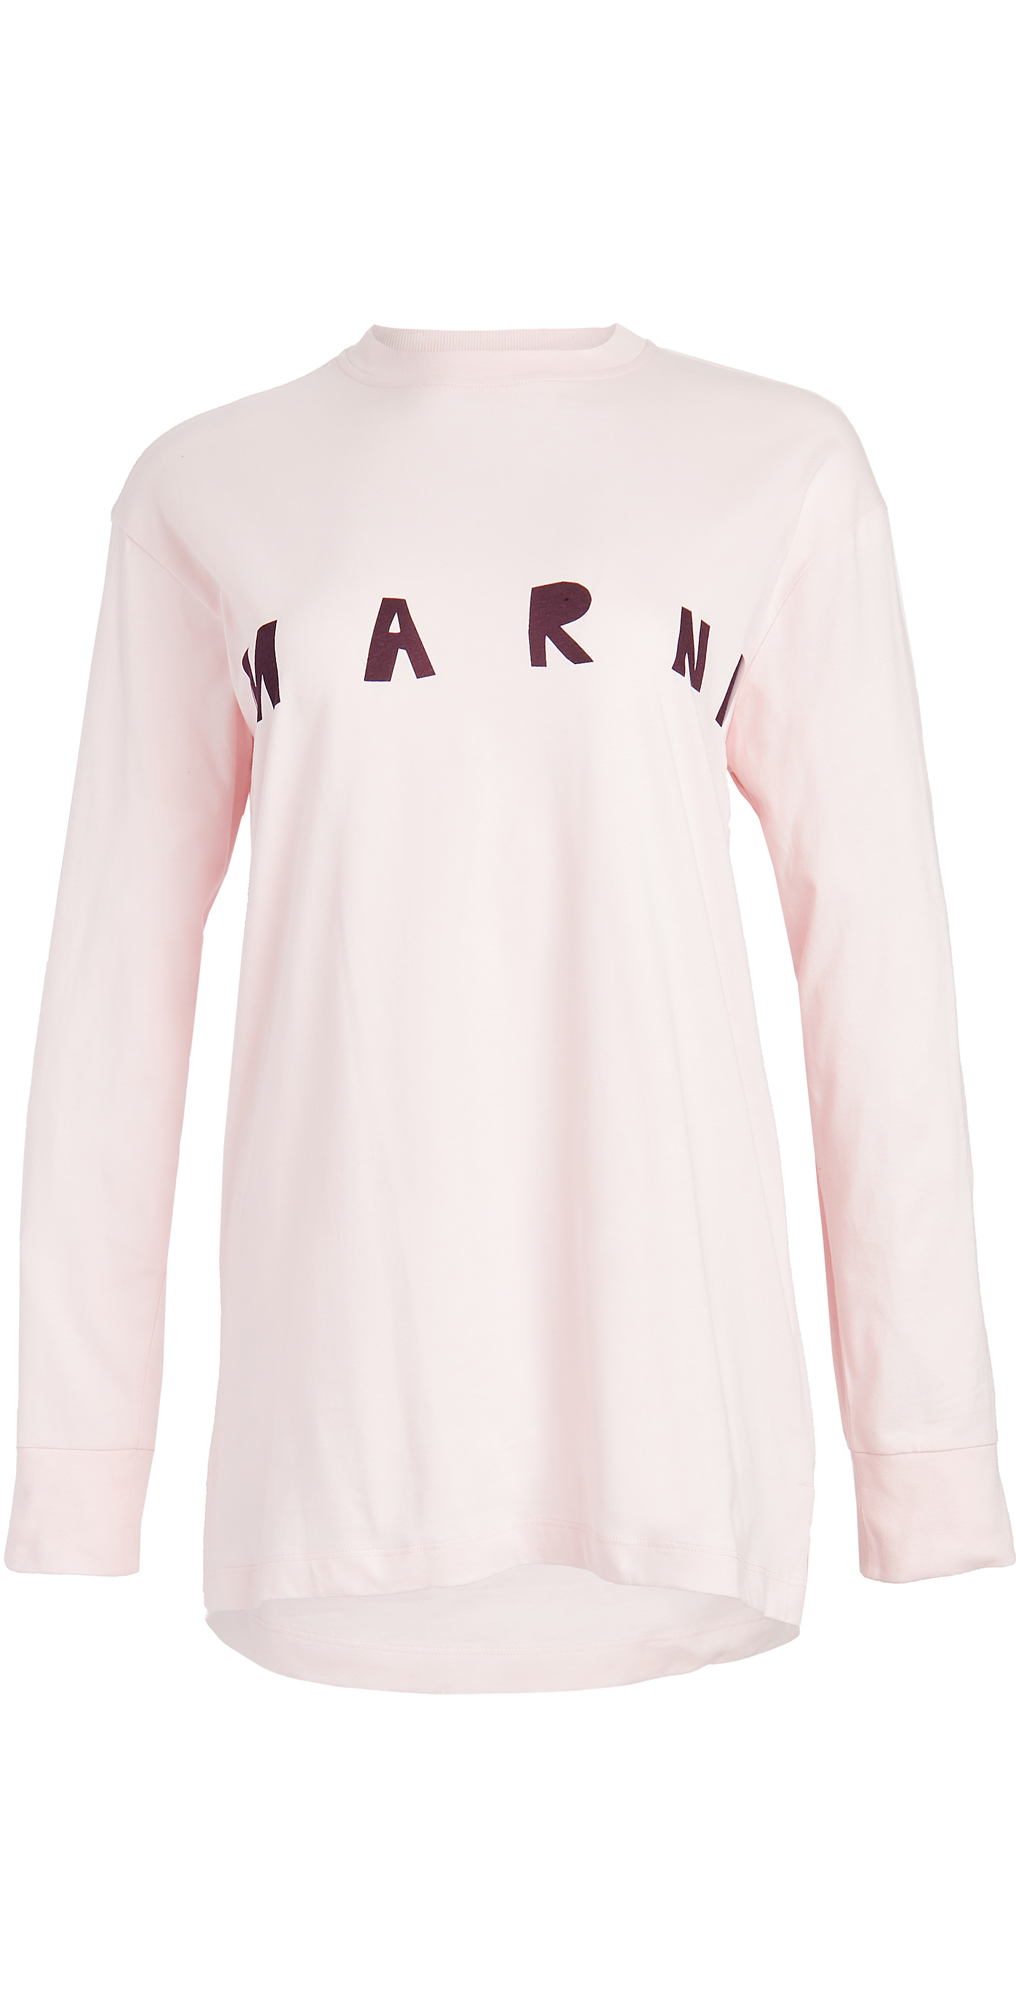 Marni Long Sleeve Crew Neck Shirt